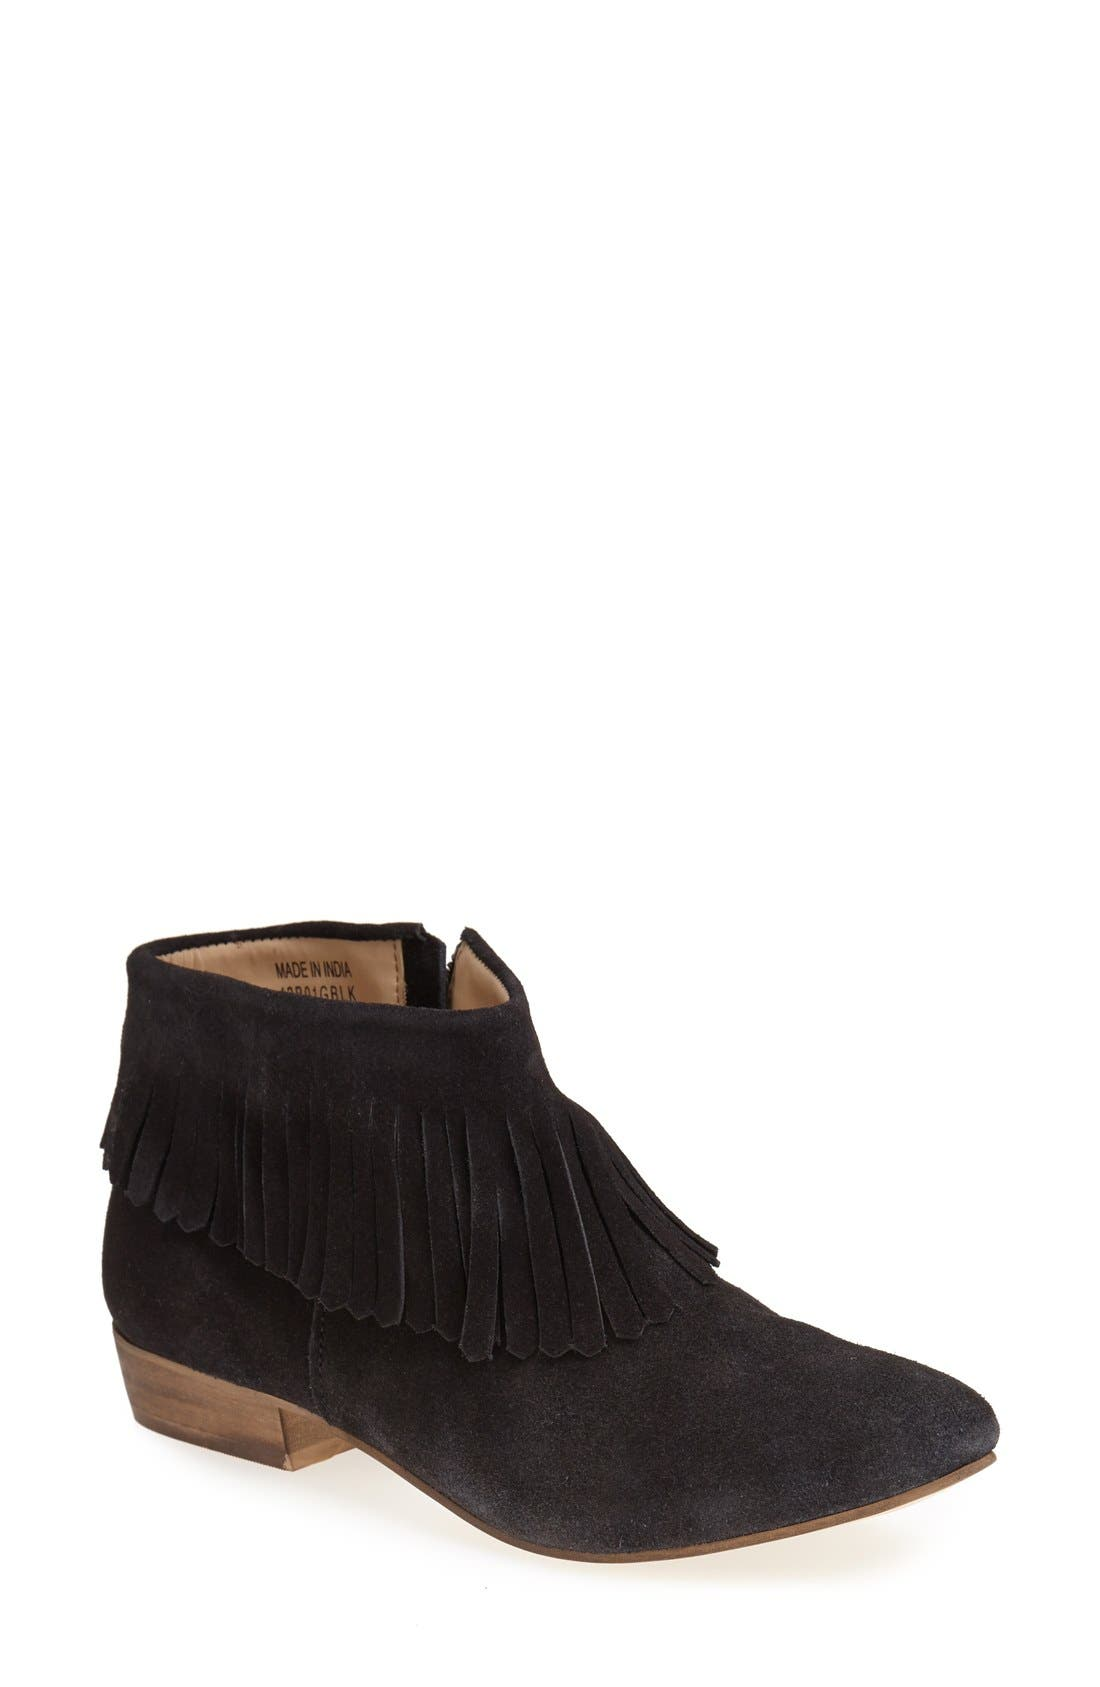 Alternate Image 1 Selected - Topshop 'Blinked' Fringe Ankle Boot (Women)